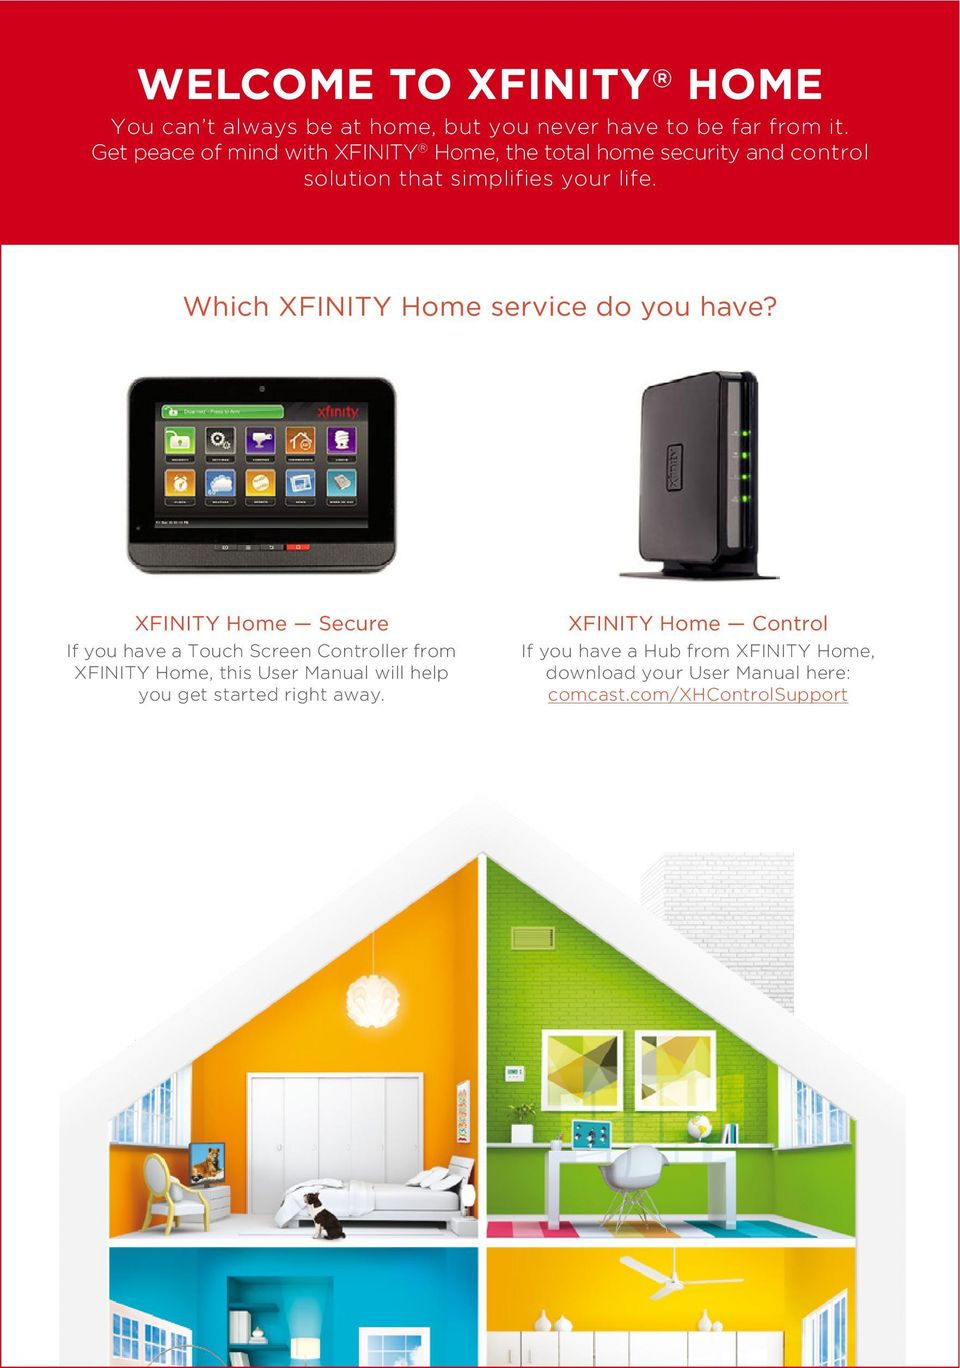 Which XFINITY Home service do you have?